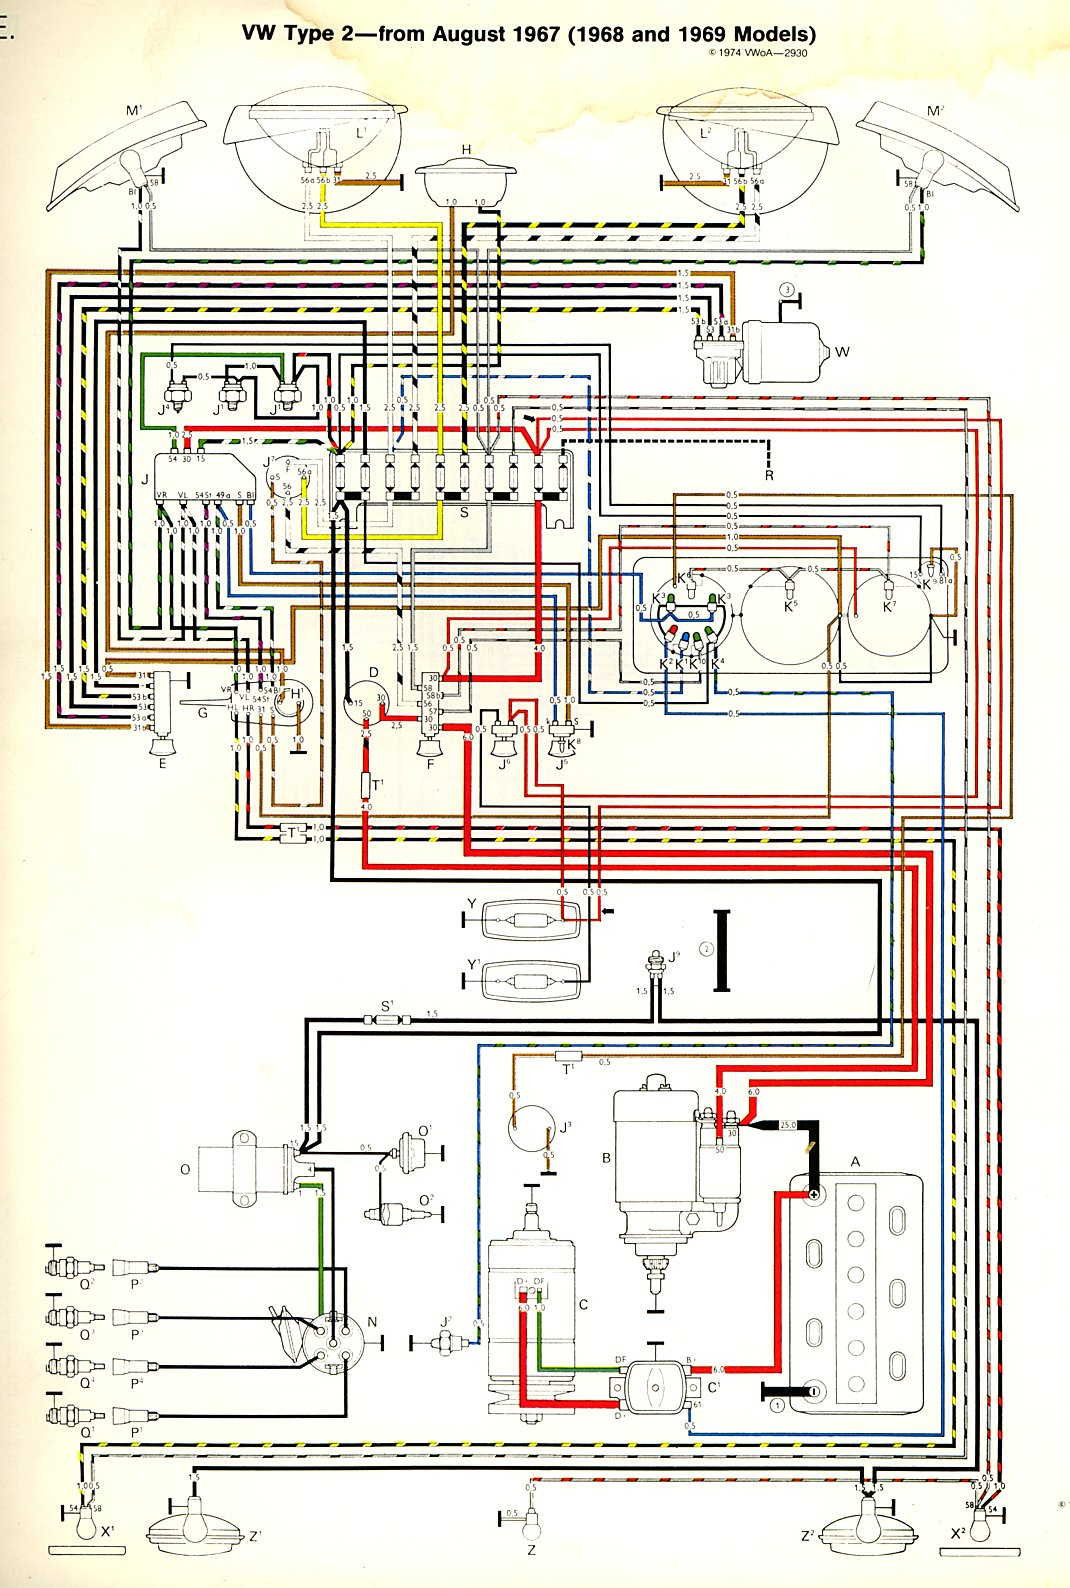 baybus_6869a bus wiring diagram vw wiring harness diagram \u2022 wiring diagrams j wiring harness for 1967 vw beetle at gsmx.co